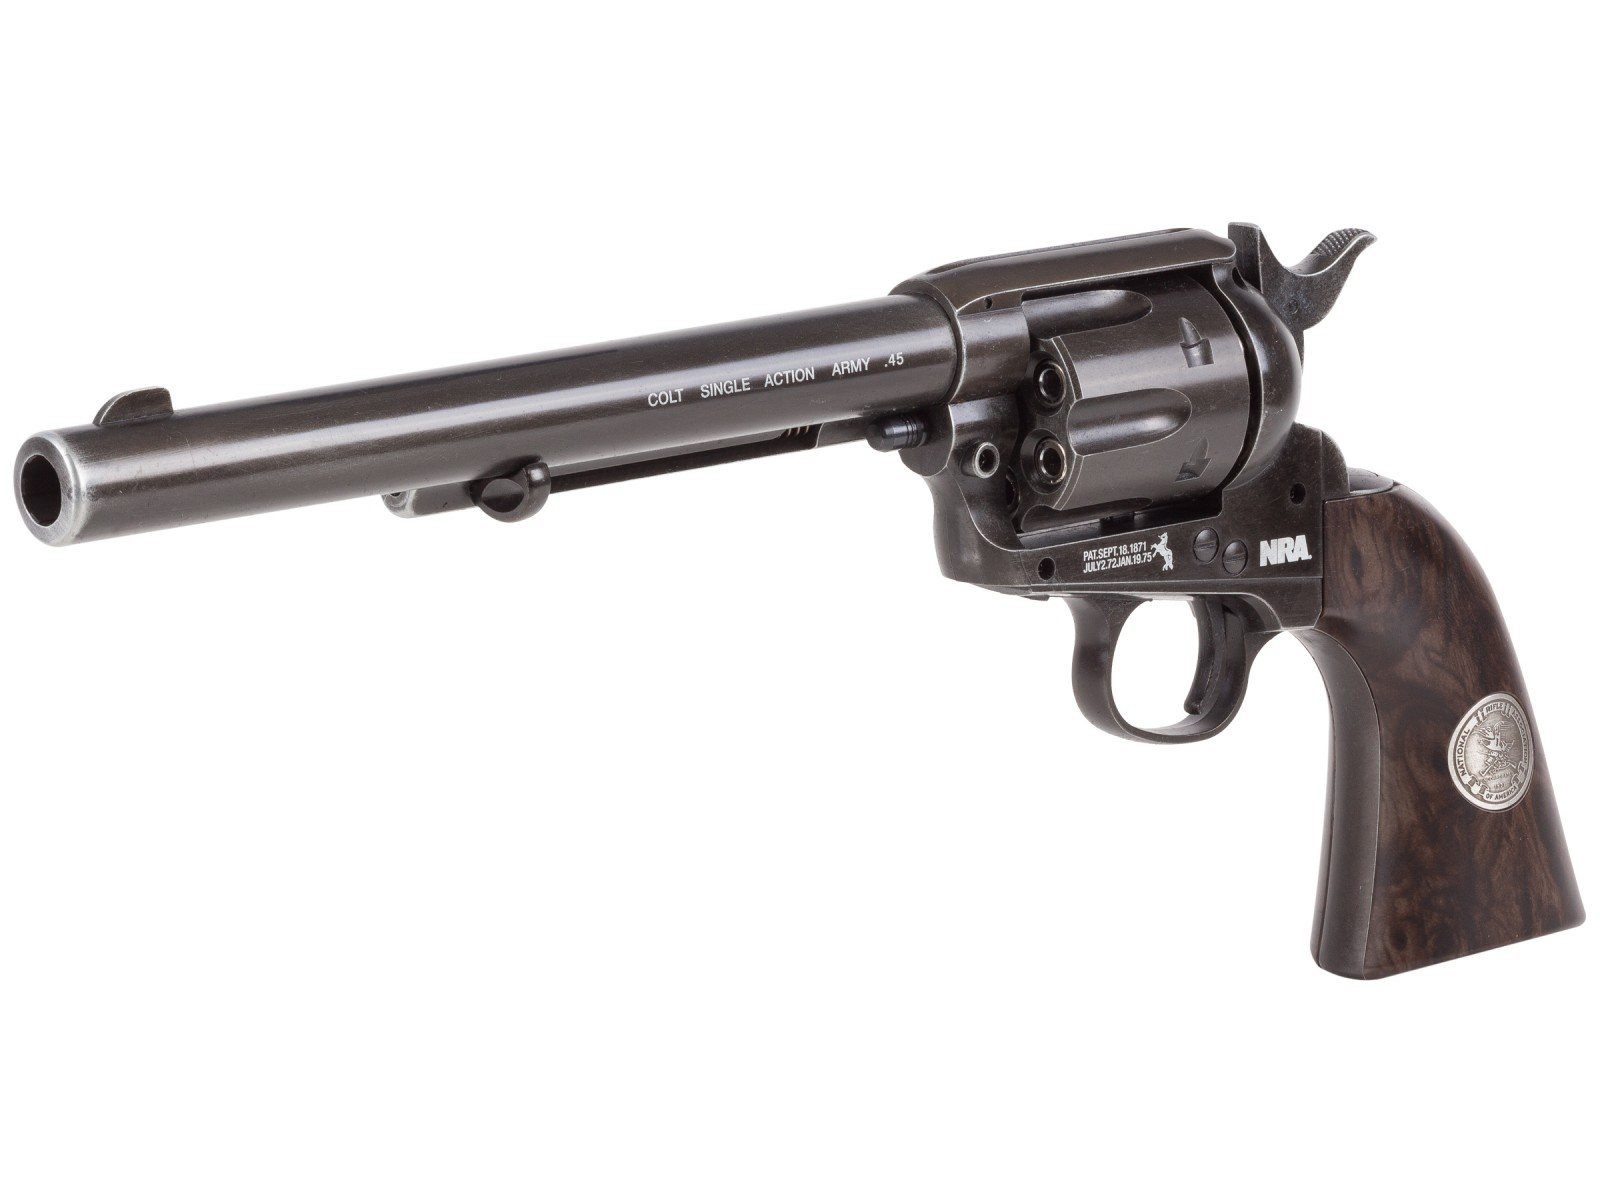 Colt NRA Peacemaker